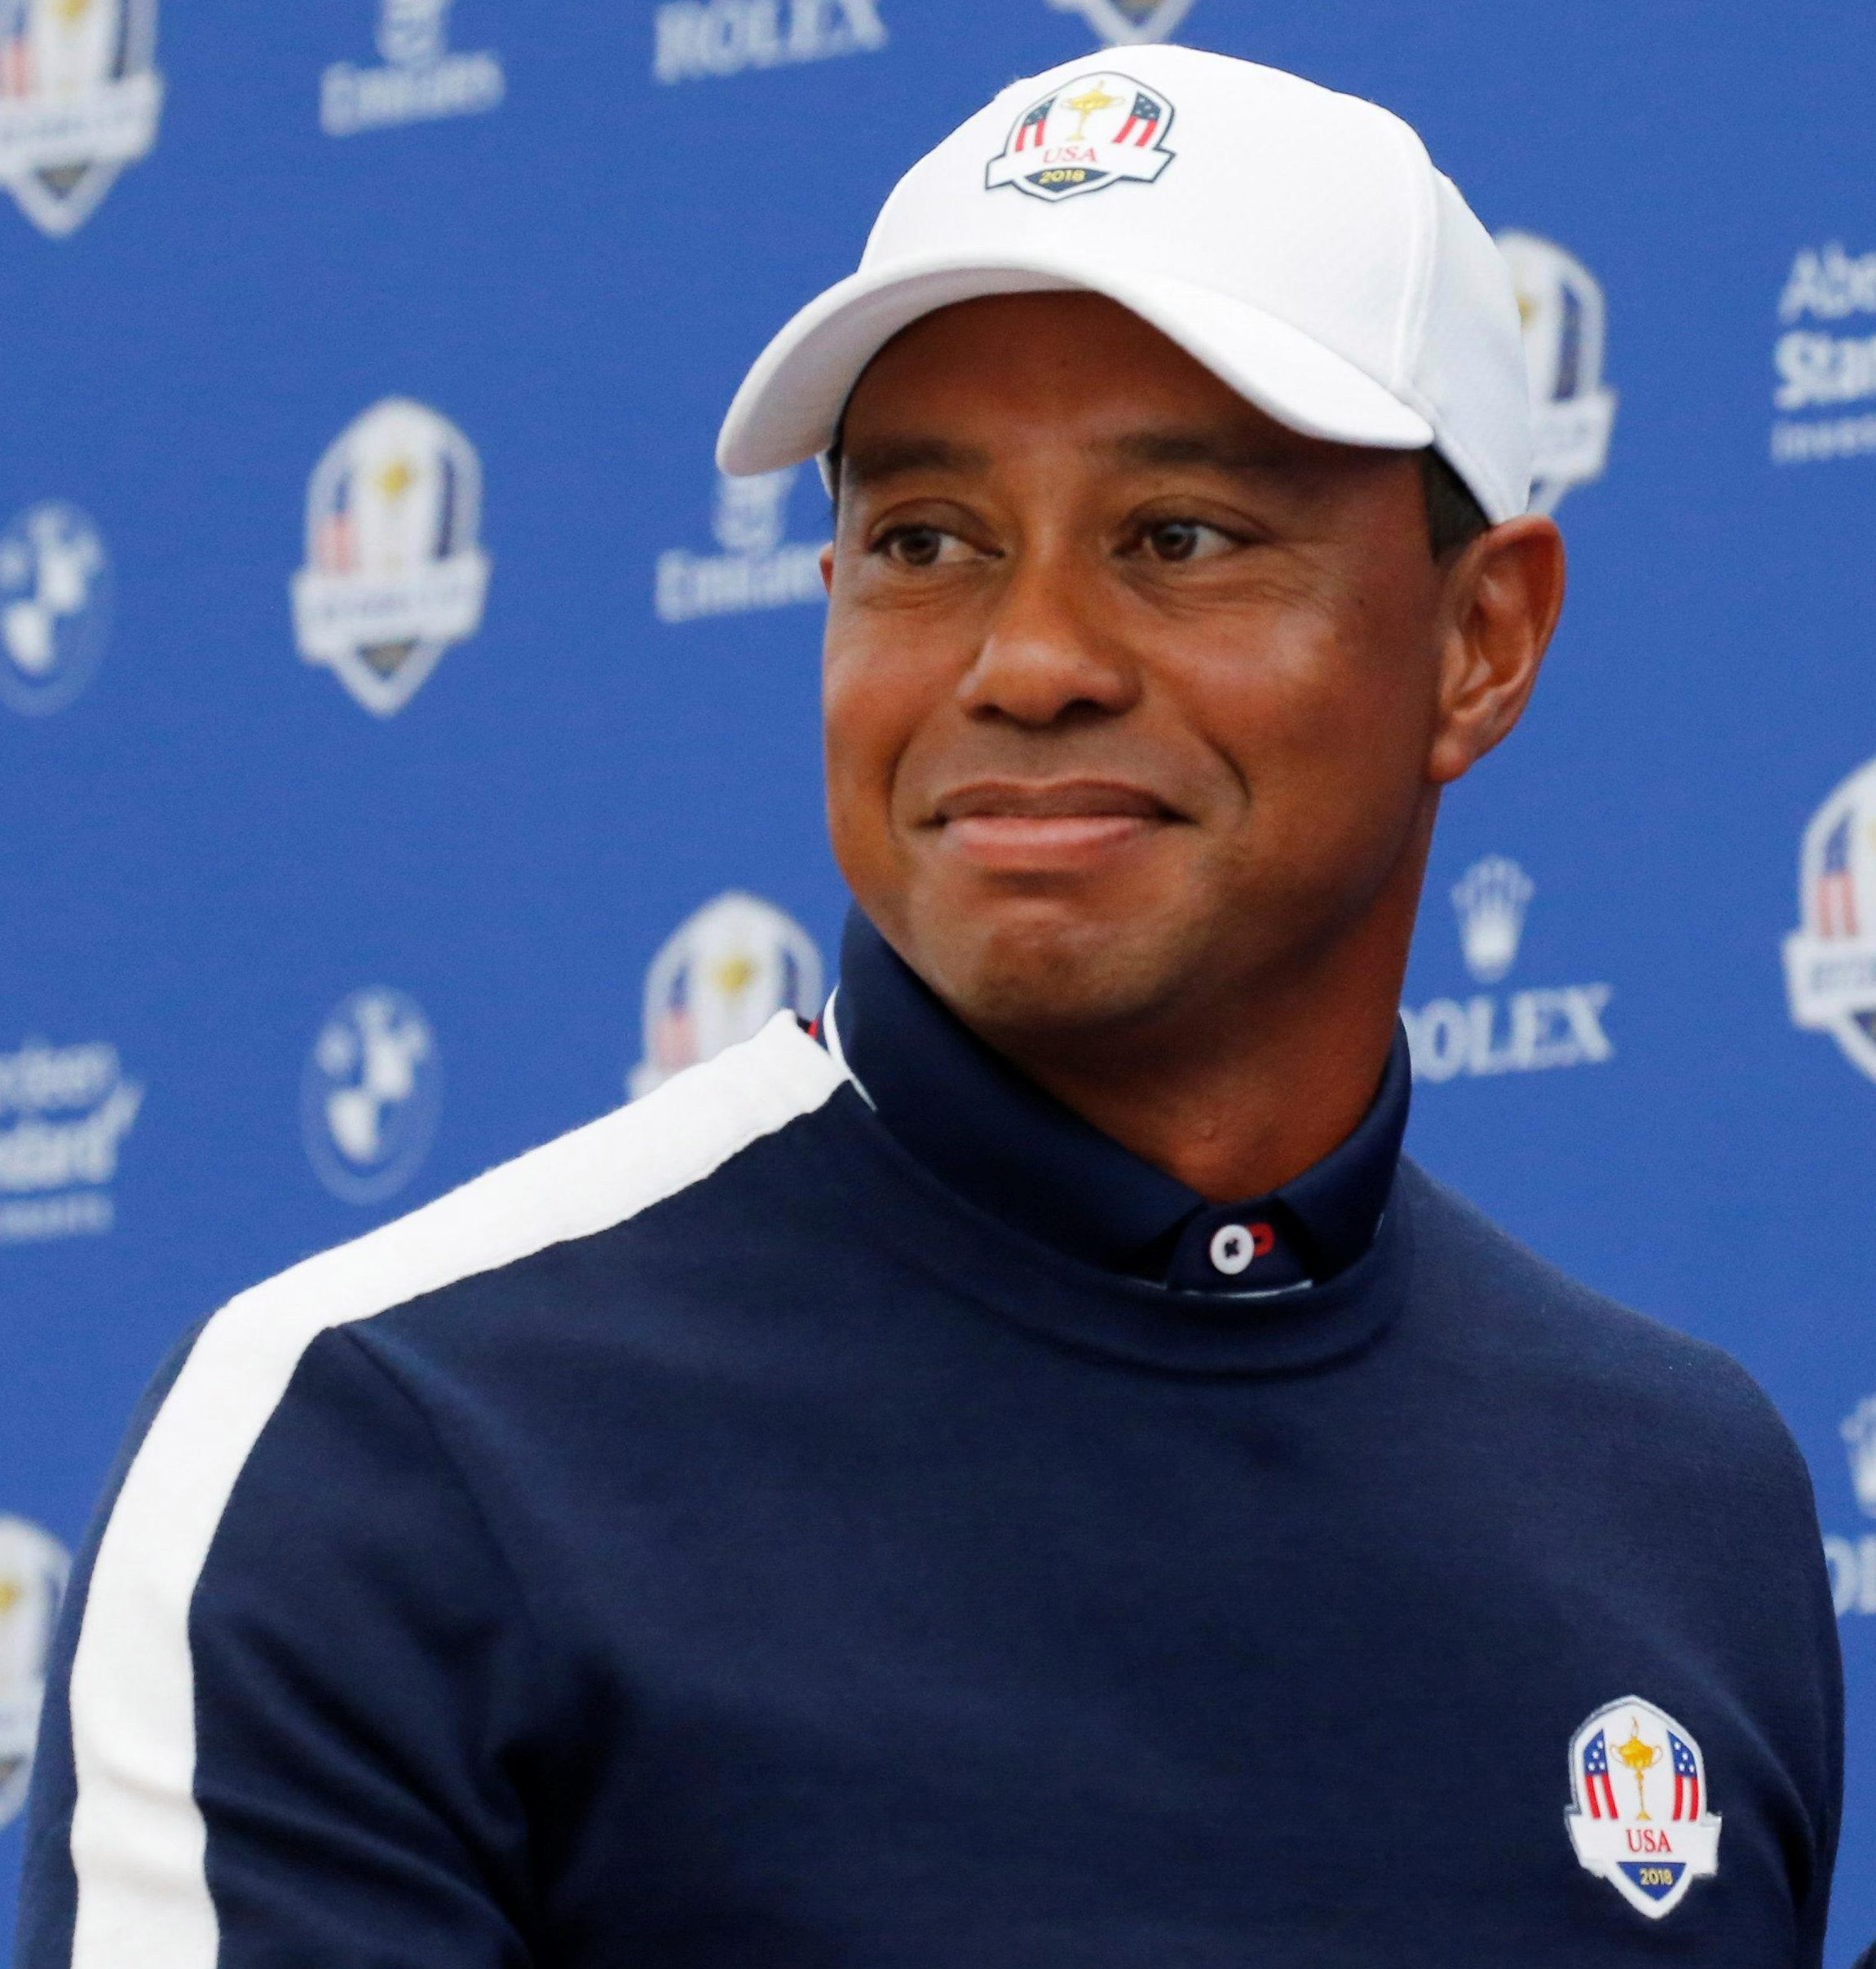 A smiling Tiger Woods faces the media at Le Golf National